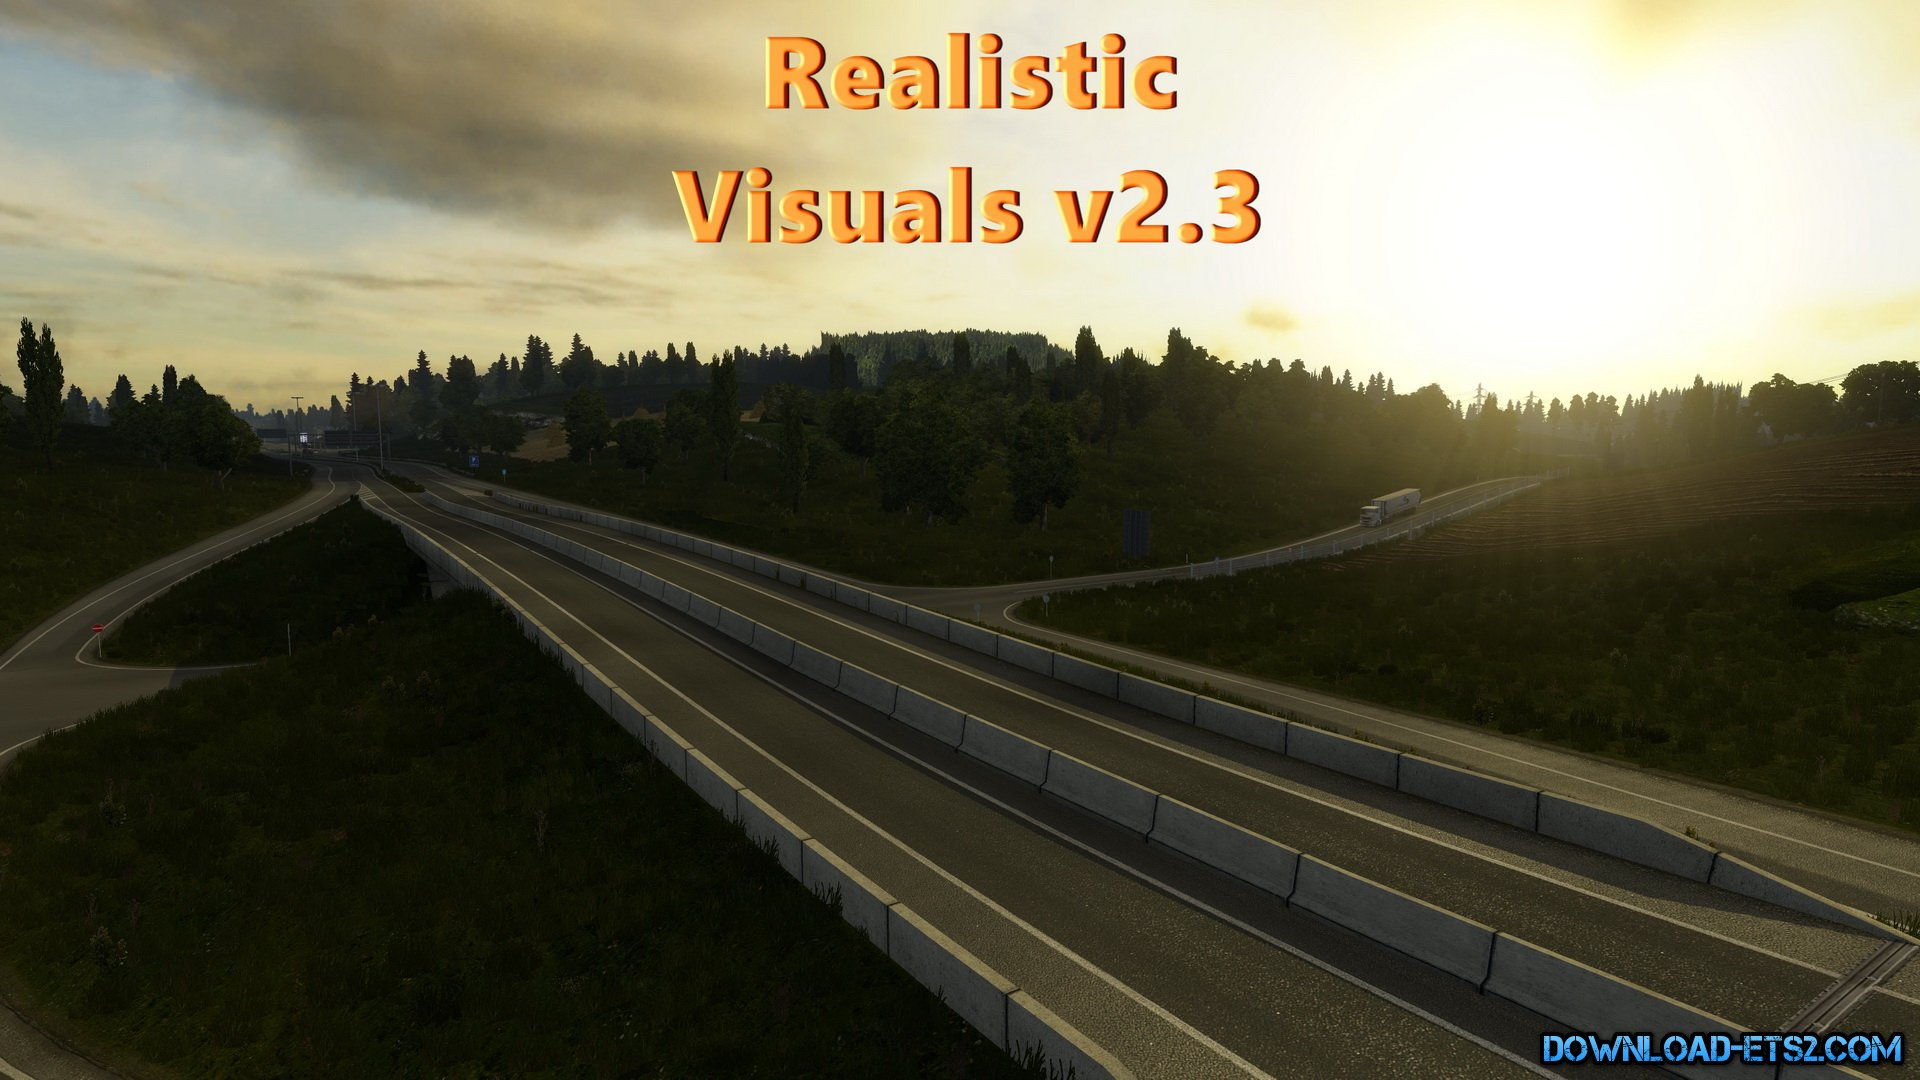 Realistic Visuals v2.3 by rafaelbc